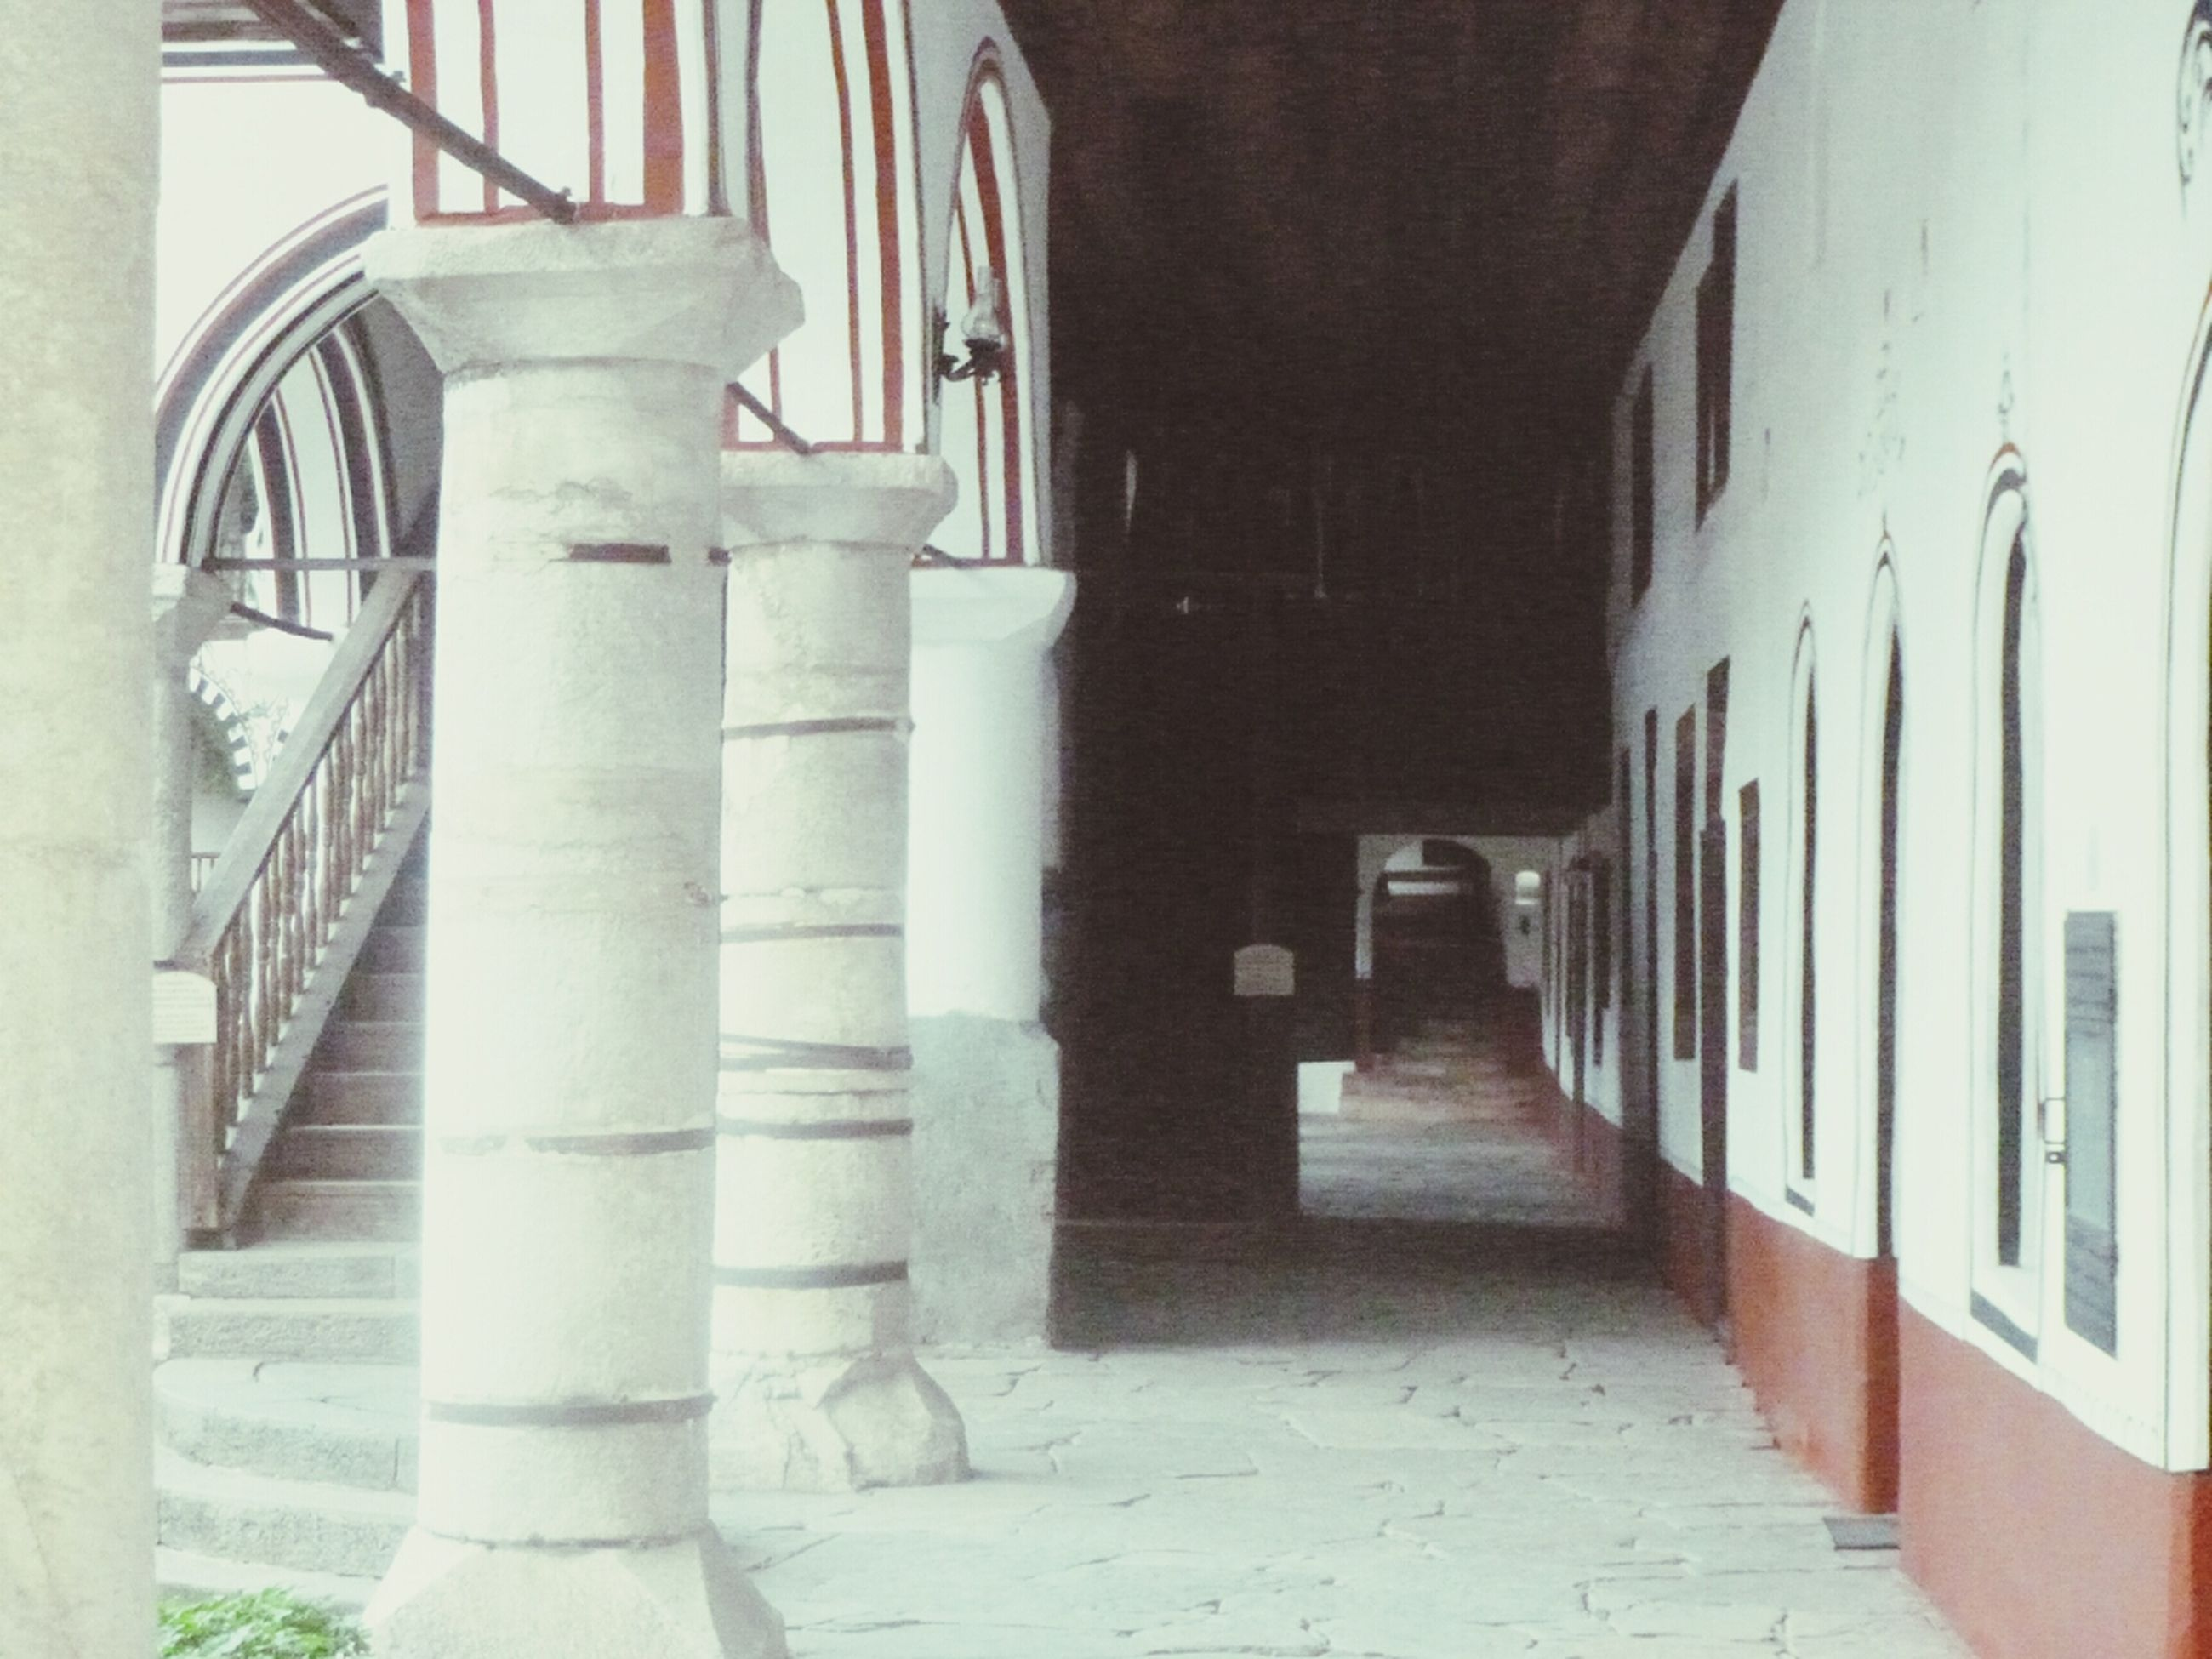 architecture, built structure, building exterior, the way forward, building, steps, narrow, corridor, diminishing perspective, arch, architectural column, column, walkway, steps and staircases, staircase, railing, day, sunlight, in a row, colonnade